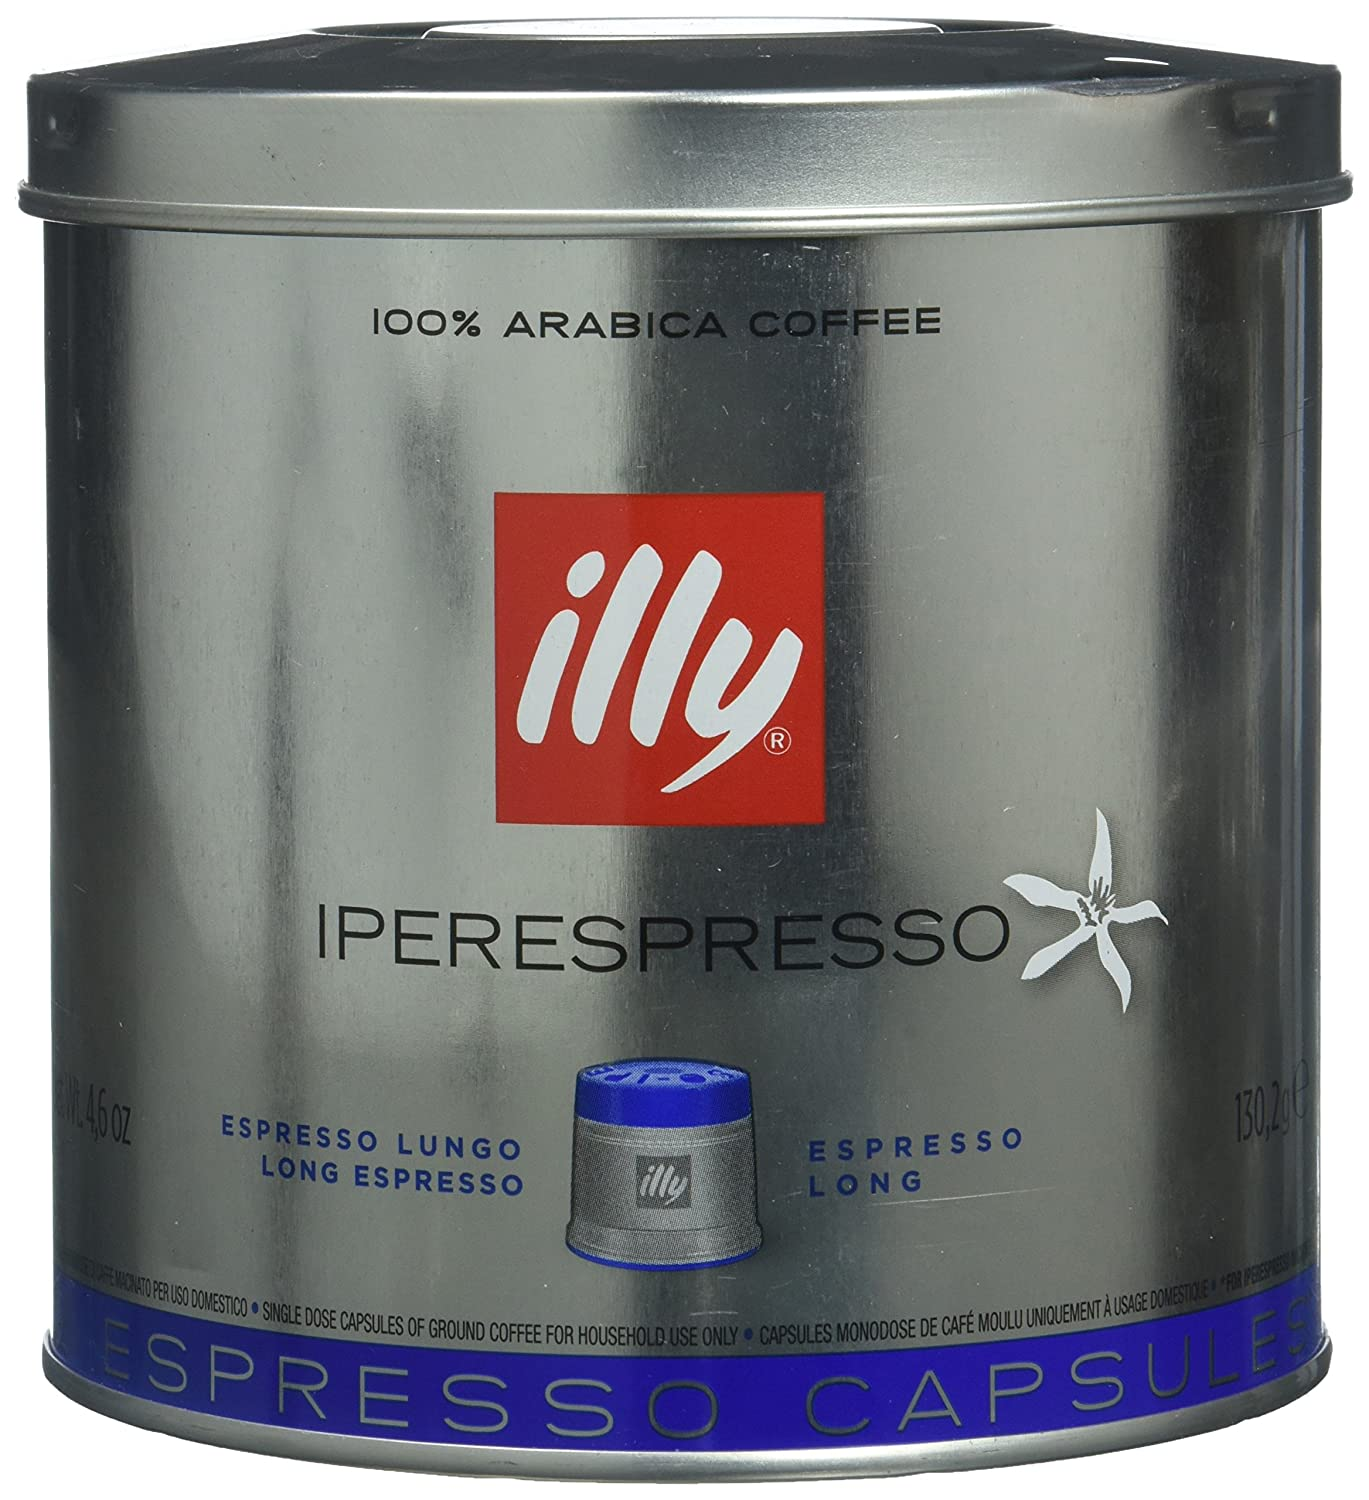 Illy Caffe Lungo Iperespresso 21 Capsules, Medium Roast, 4.6 Ounce (Pack of 2): Amazon.com: Grocery & Gourmet Food